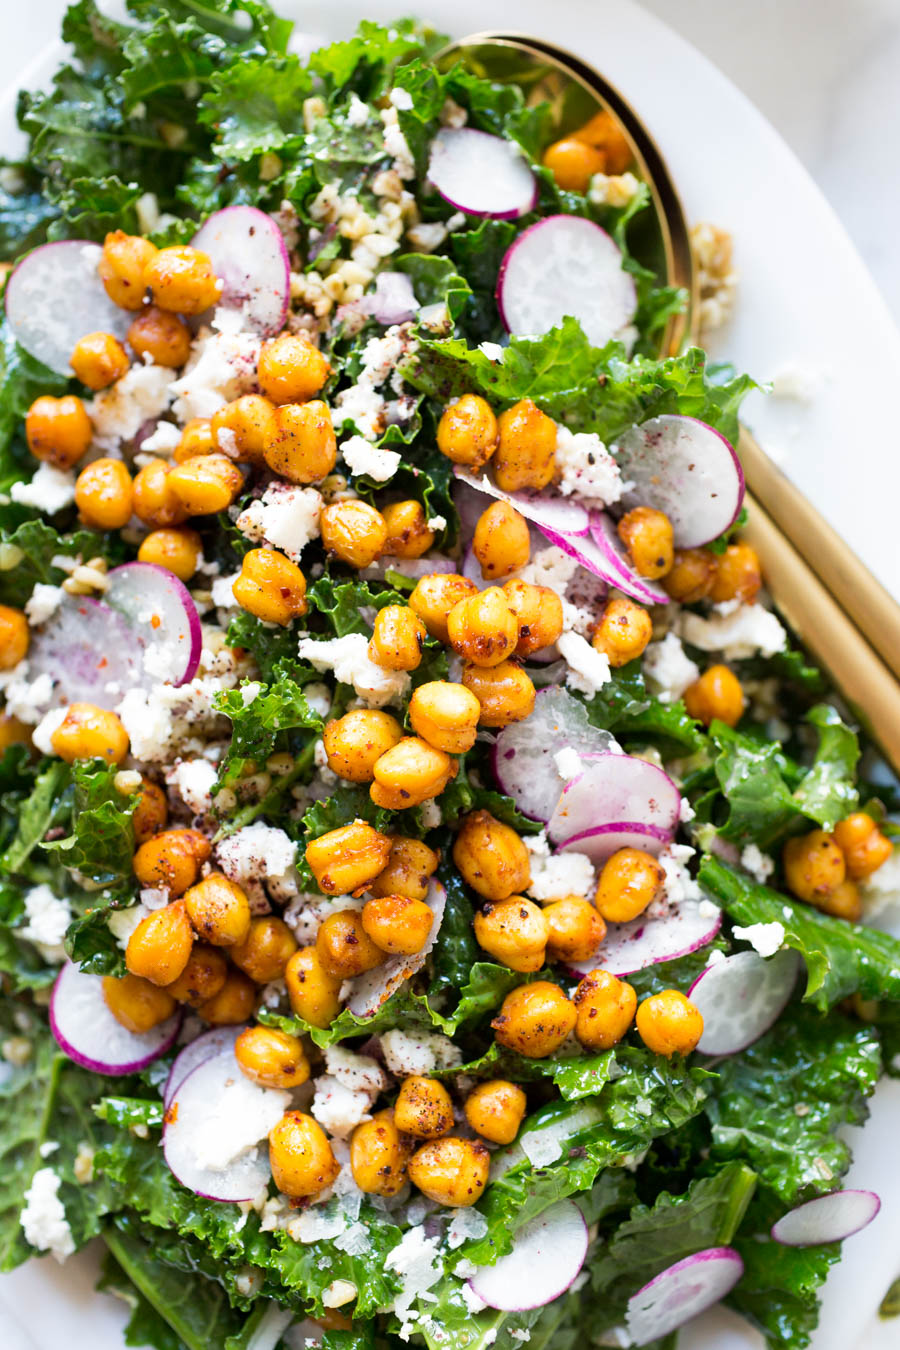 Freekeh Kale Salad with Crispy Harissa Chickpeas